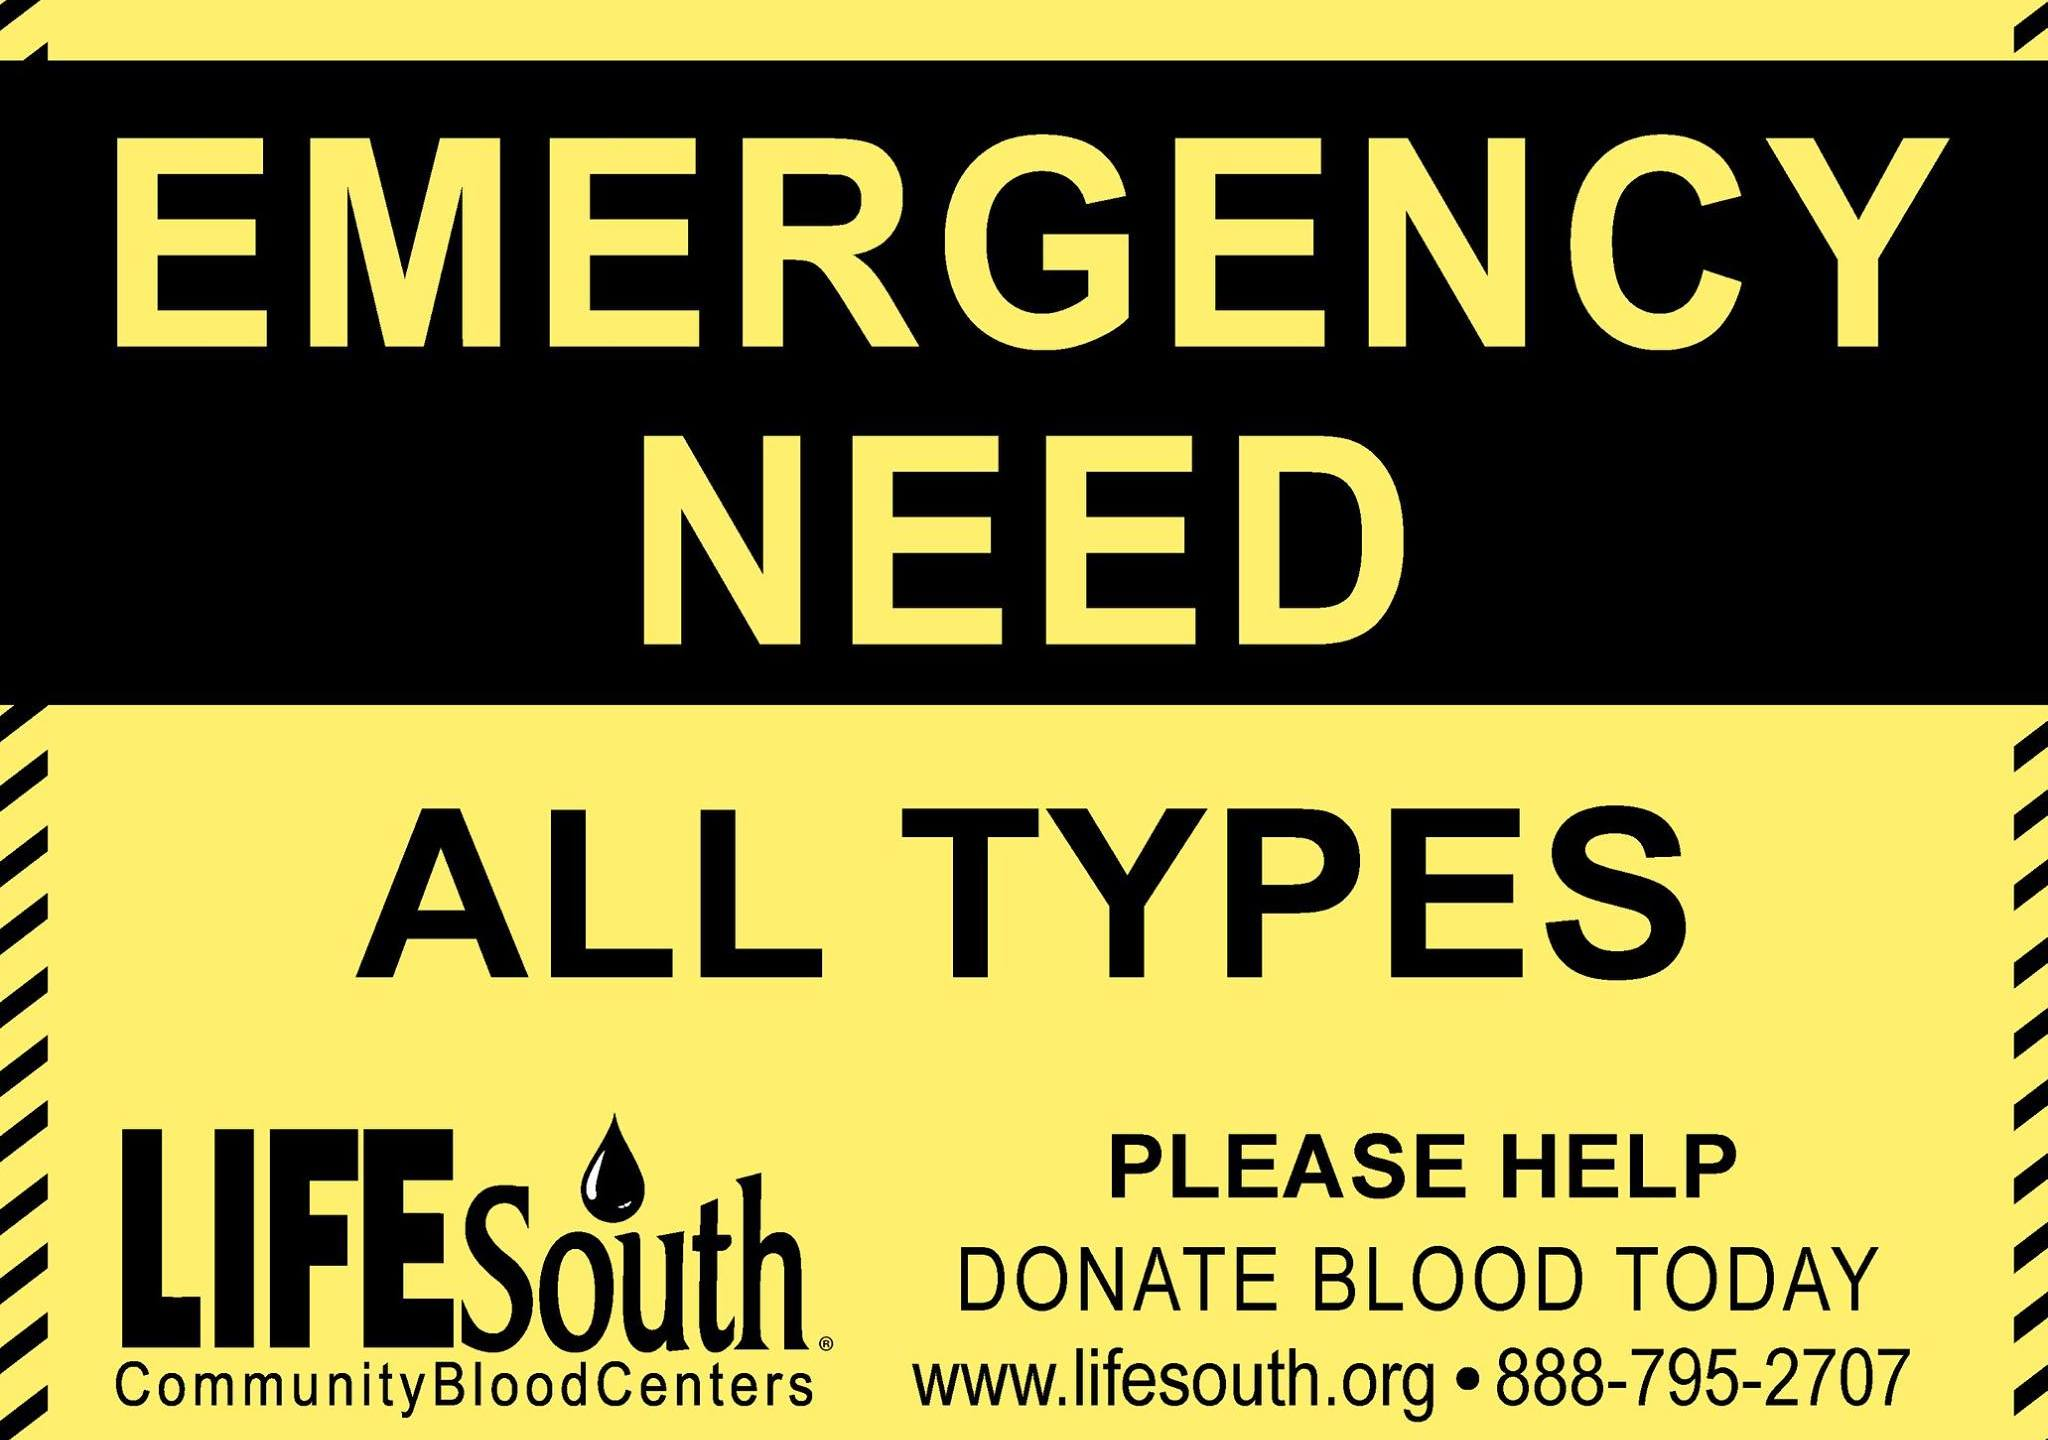 lifesouth emergency need_147190